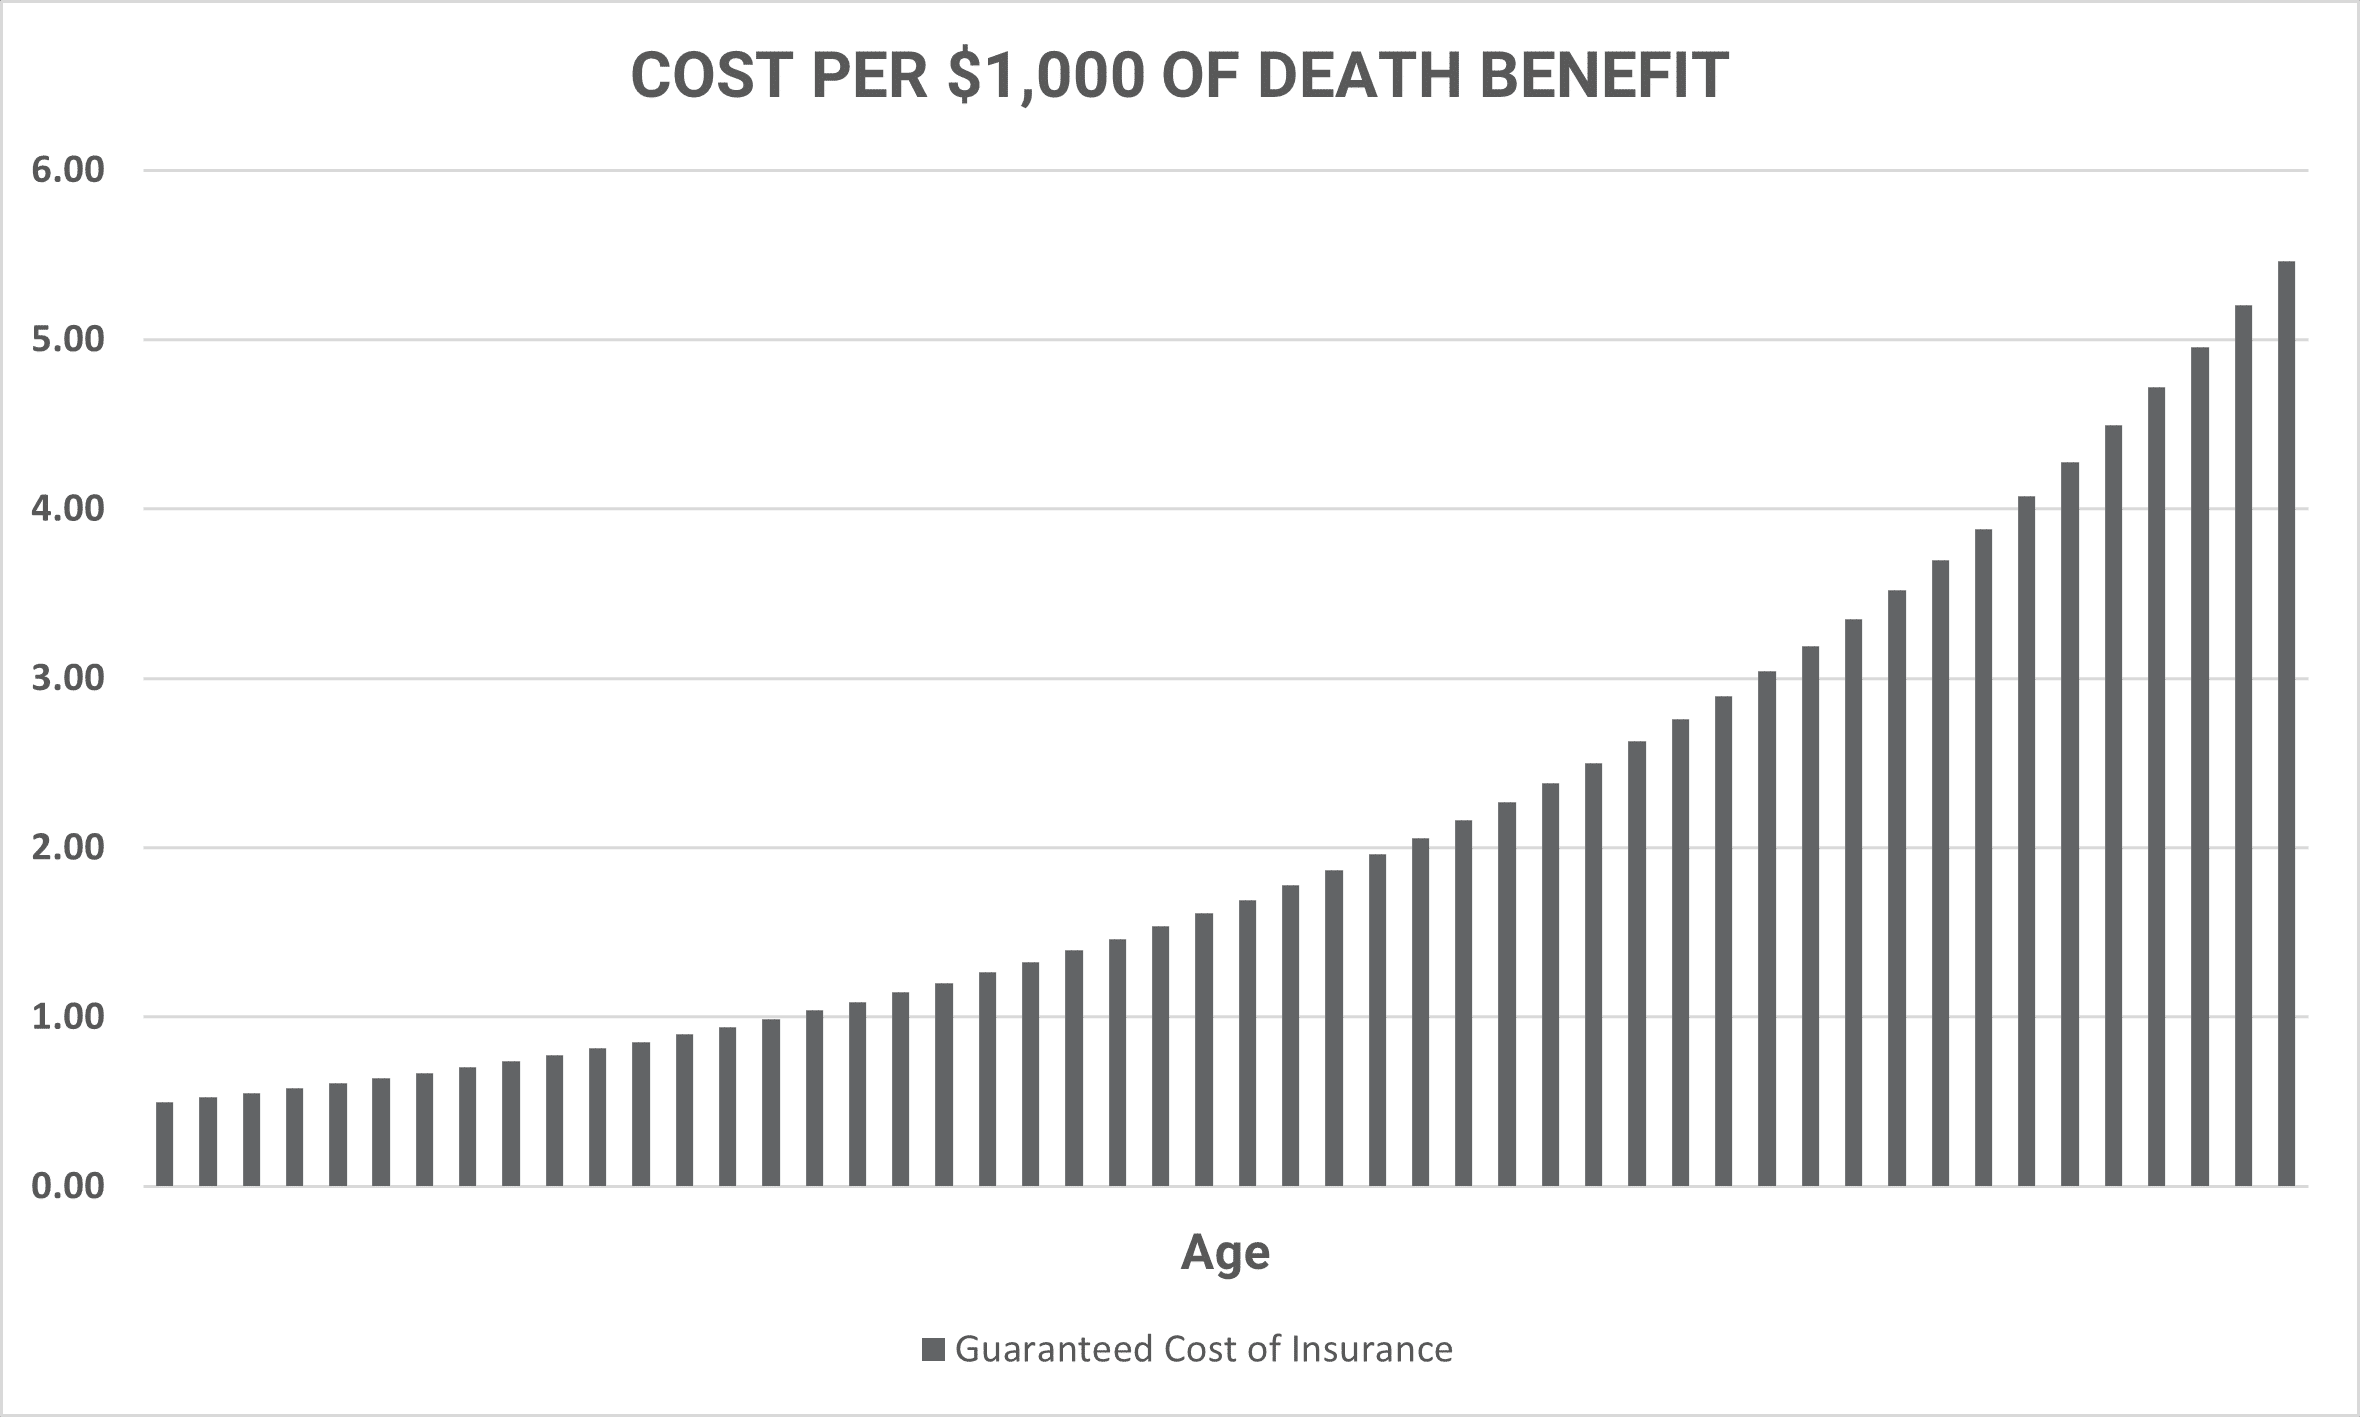 Guaranteed Cost of Life Insurance